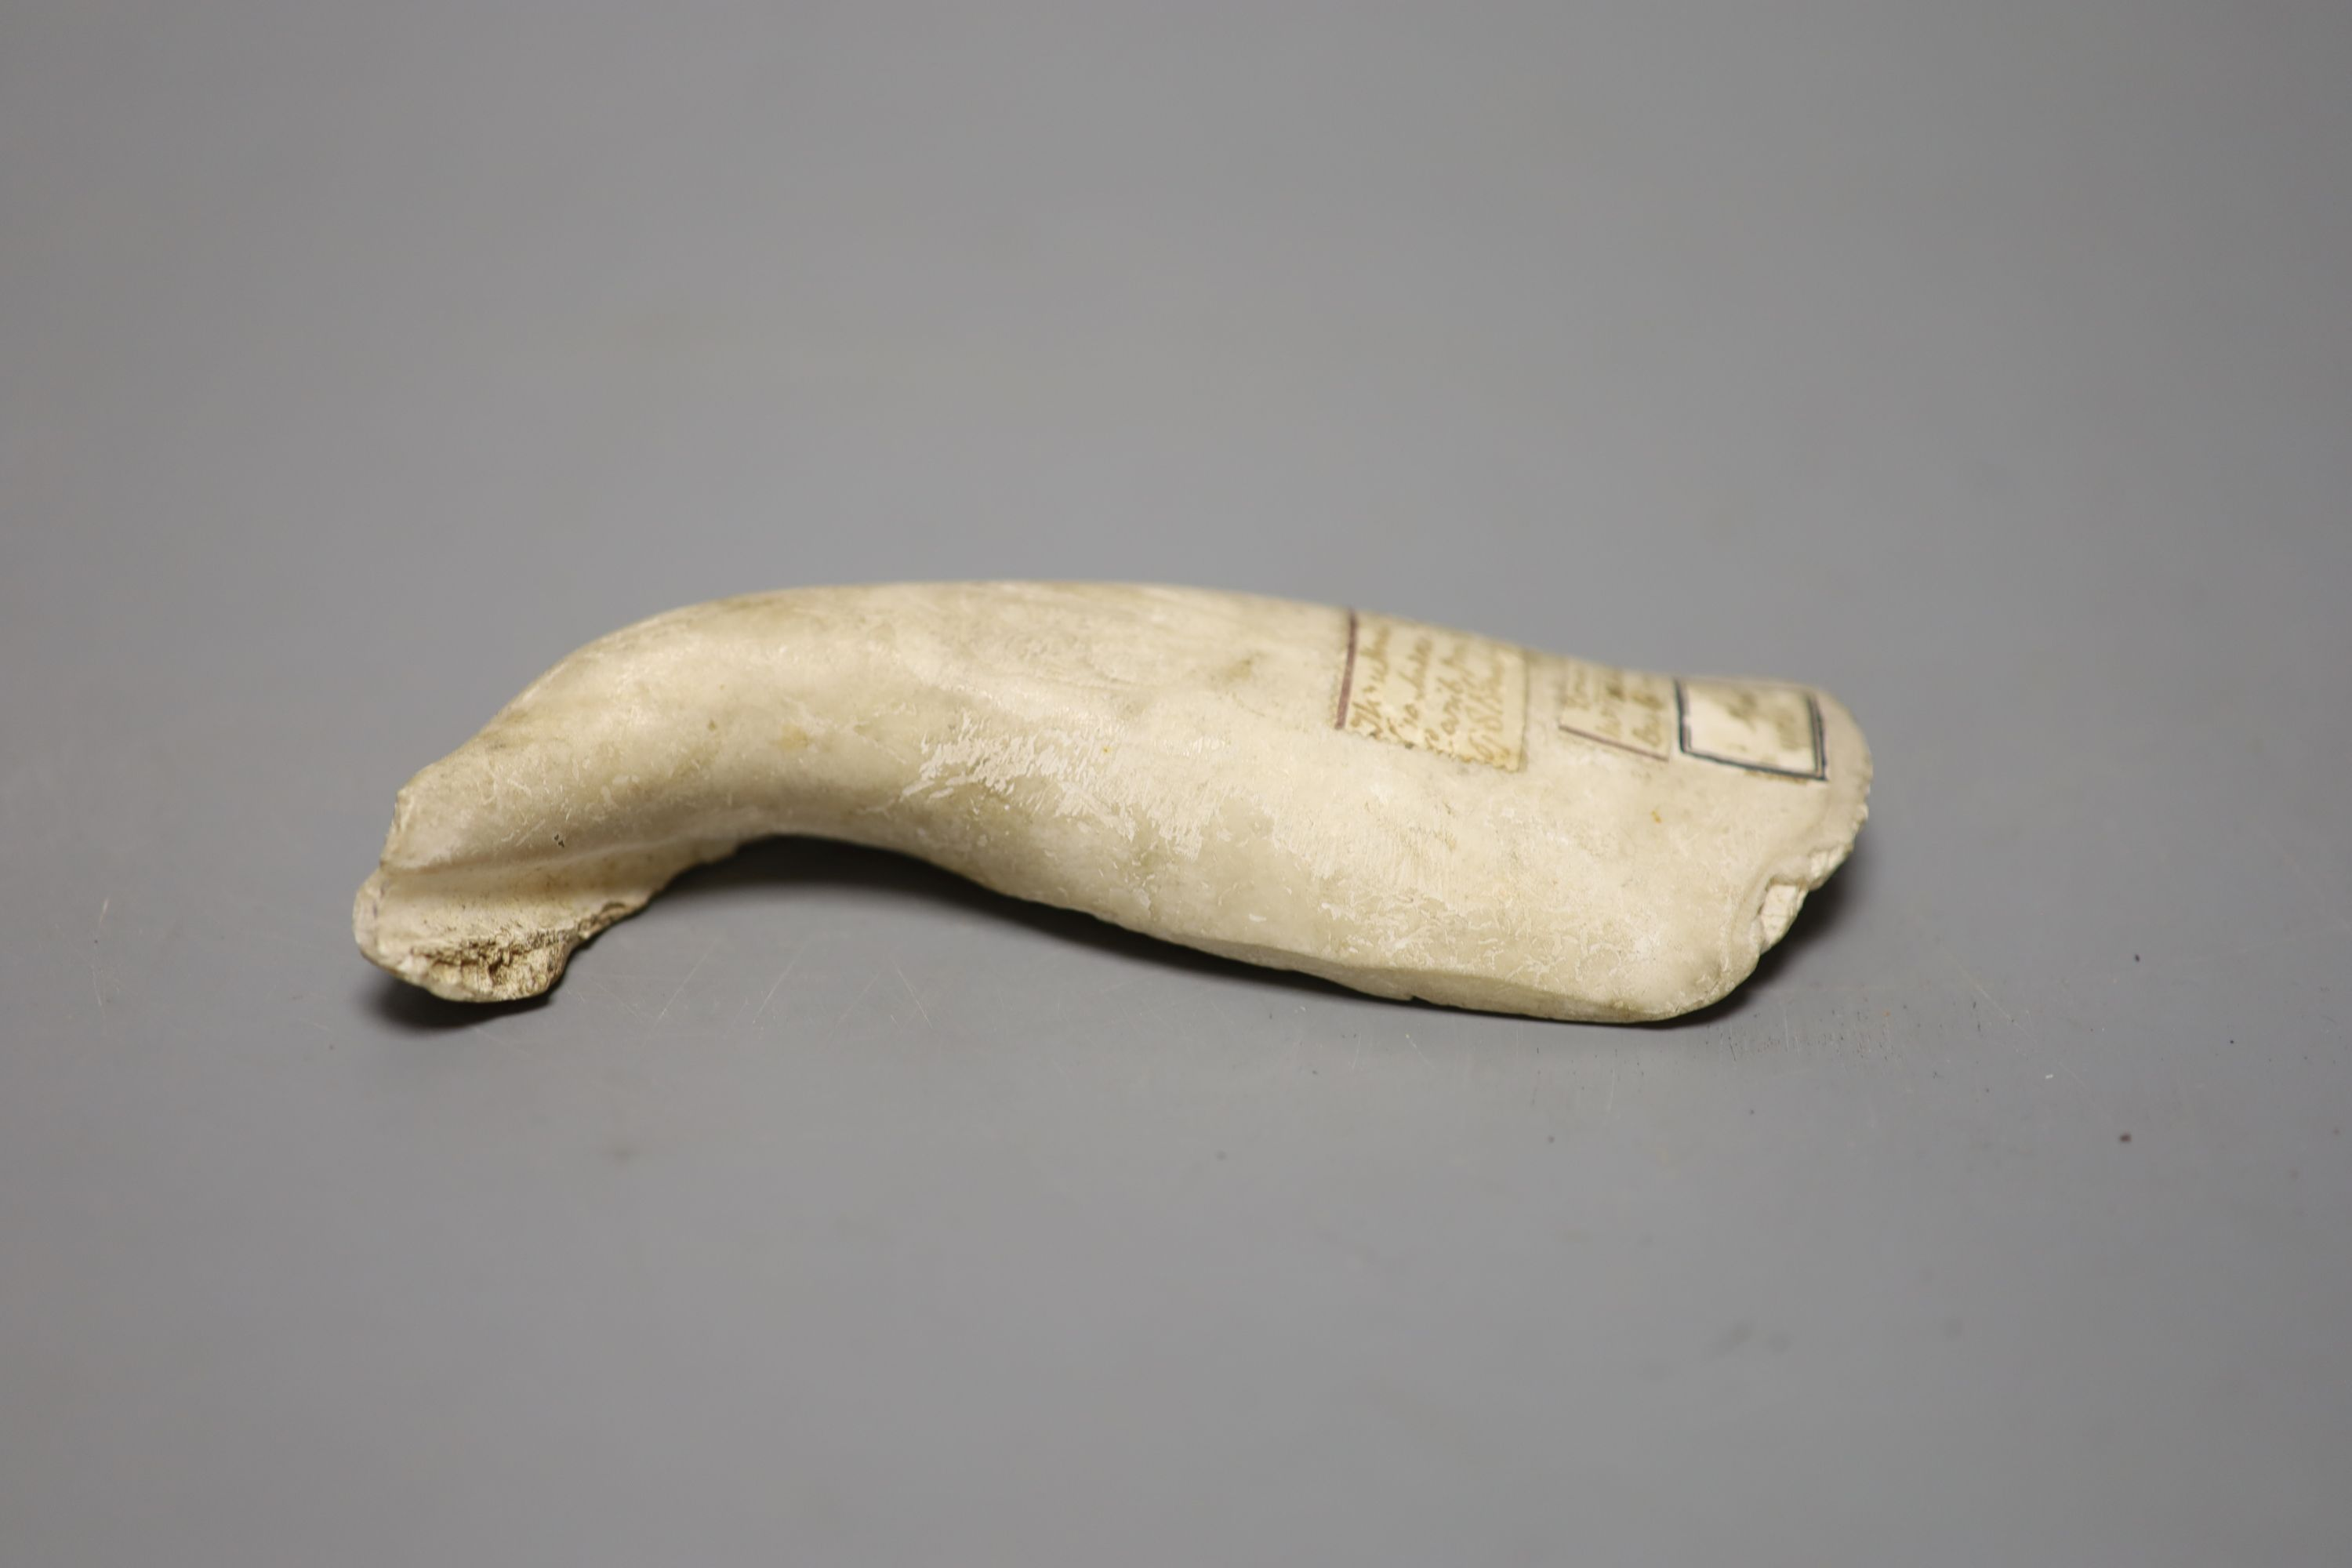 Caribbean anthropology - a Queen Conch shell hand tool, from the columella (inner spiral section) of - Image 3 of 3